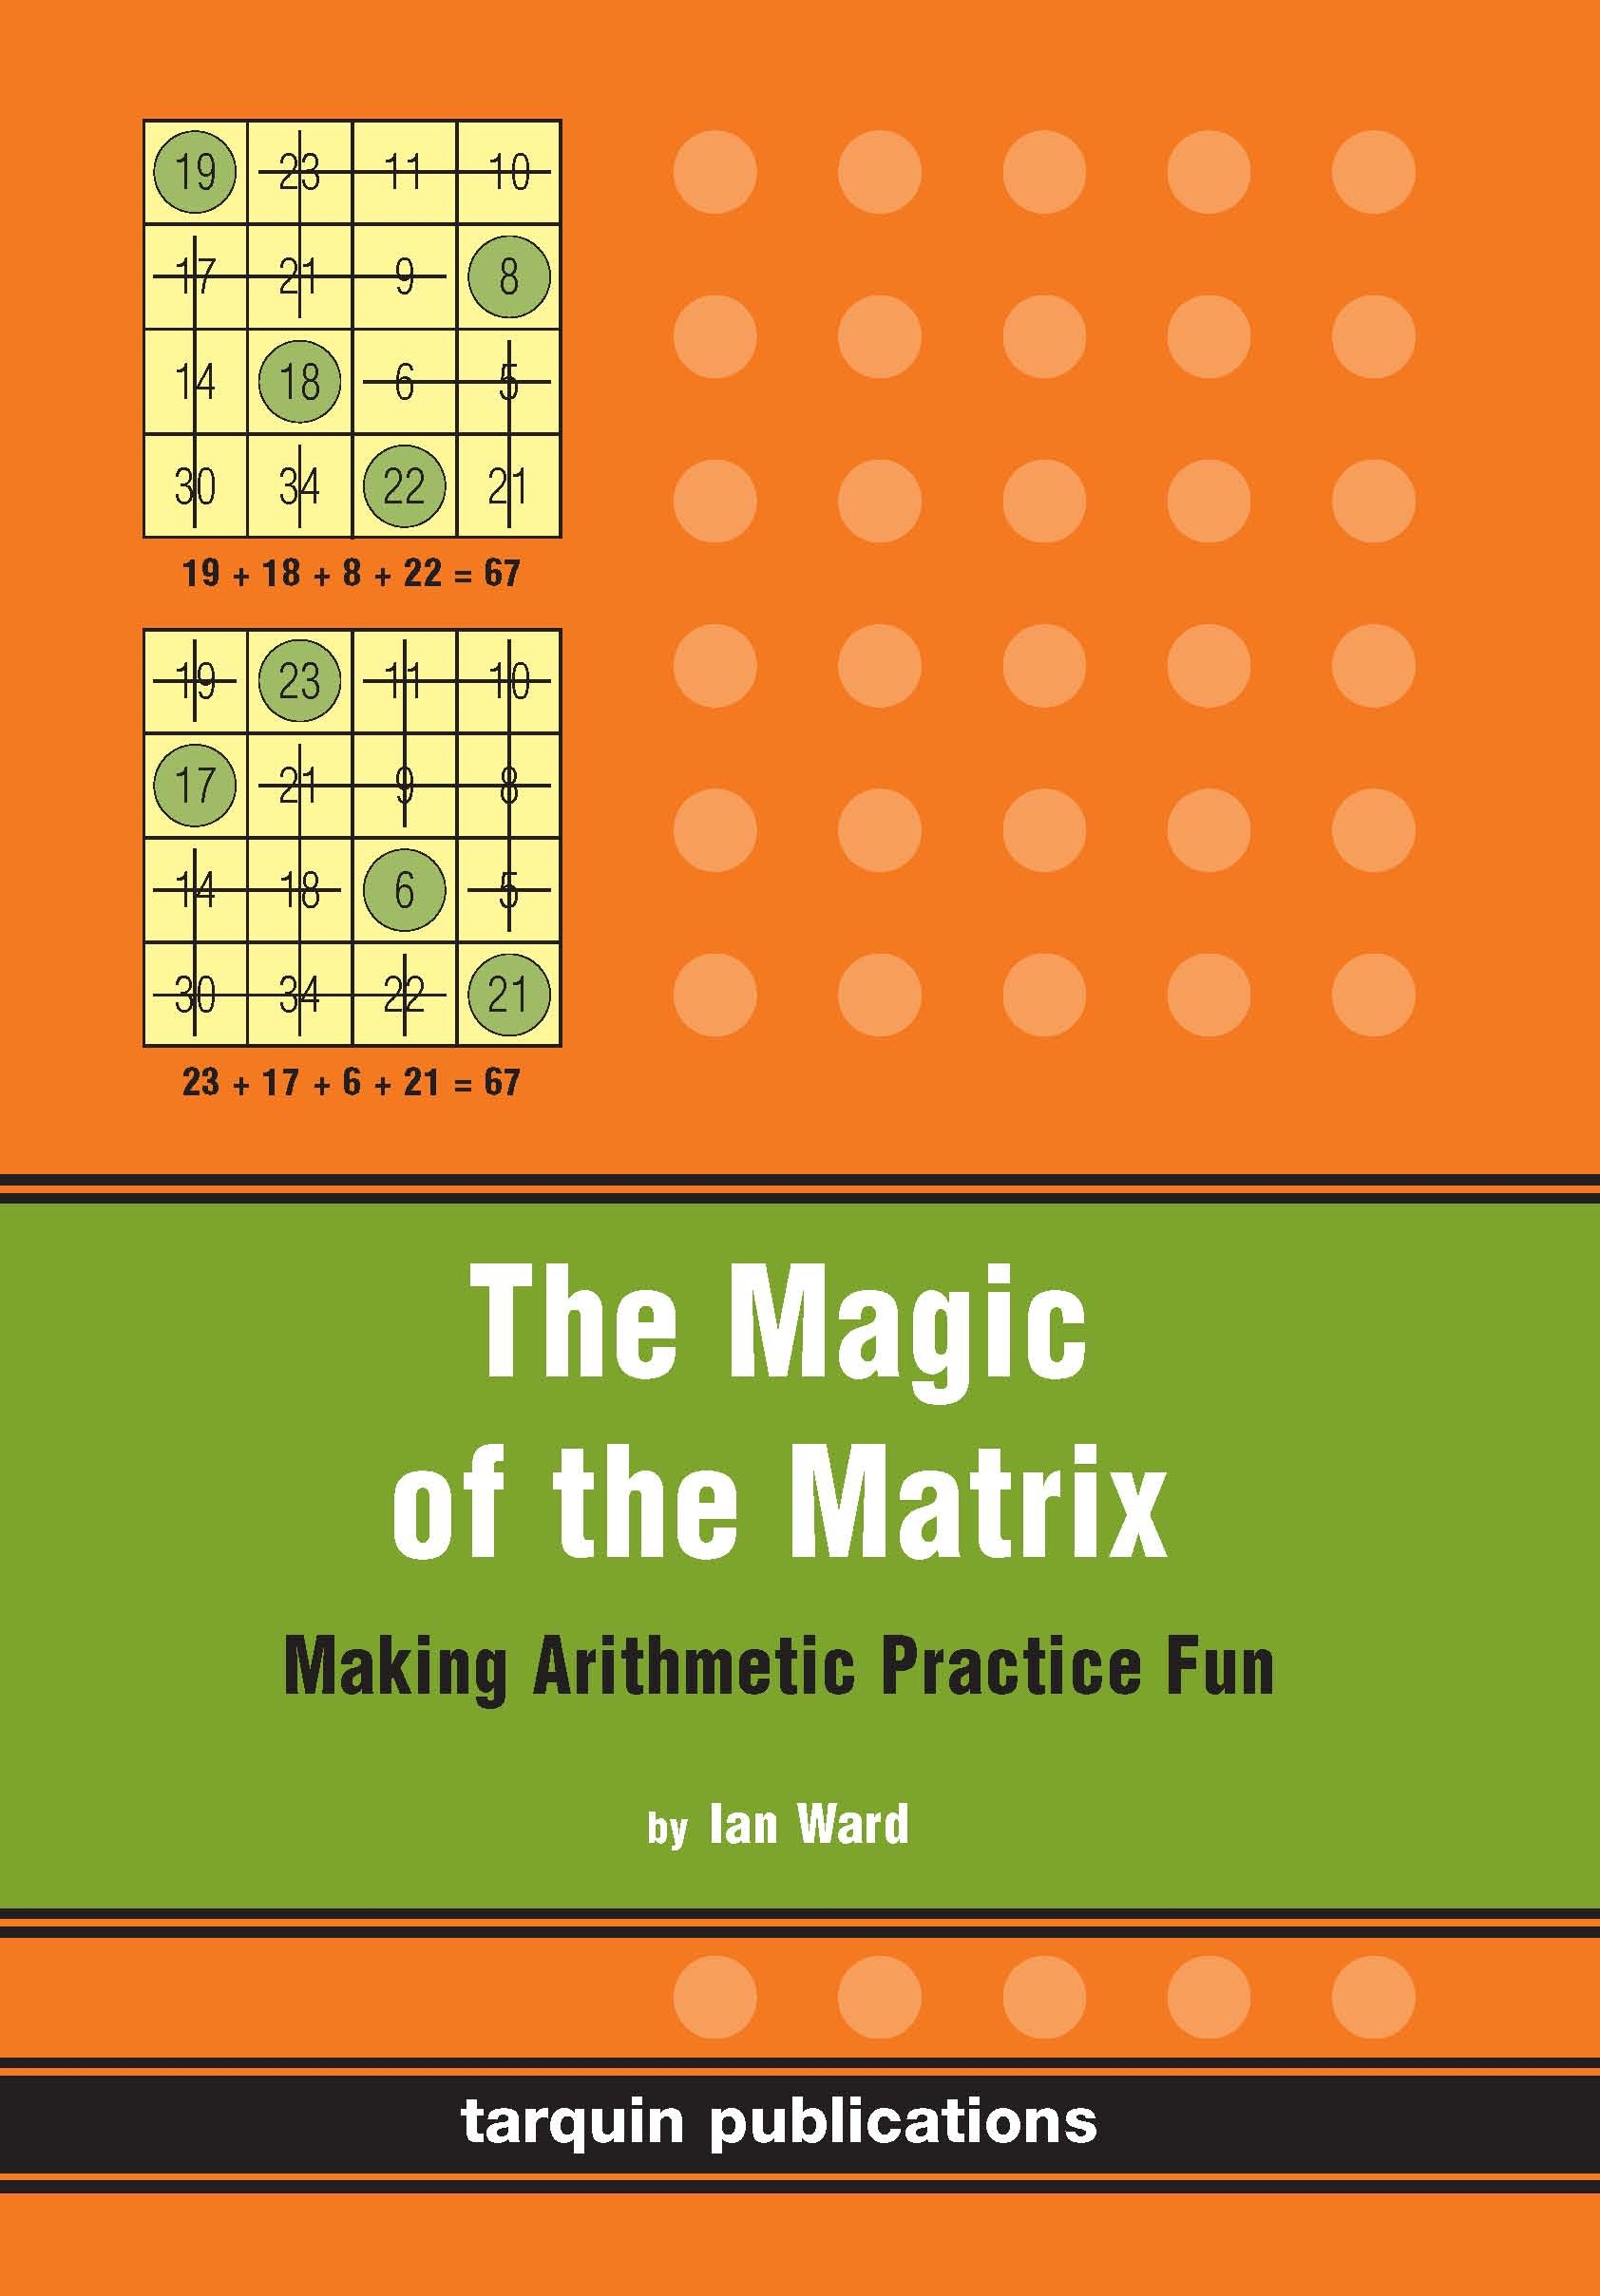 The Magic of the Matrix: Practise Arithmetic While Having Fun!